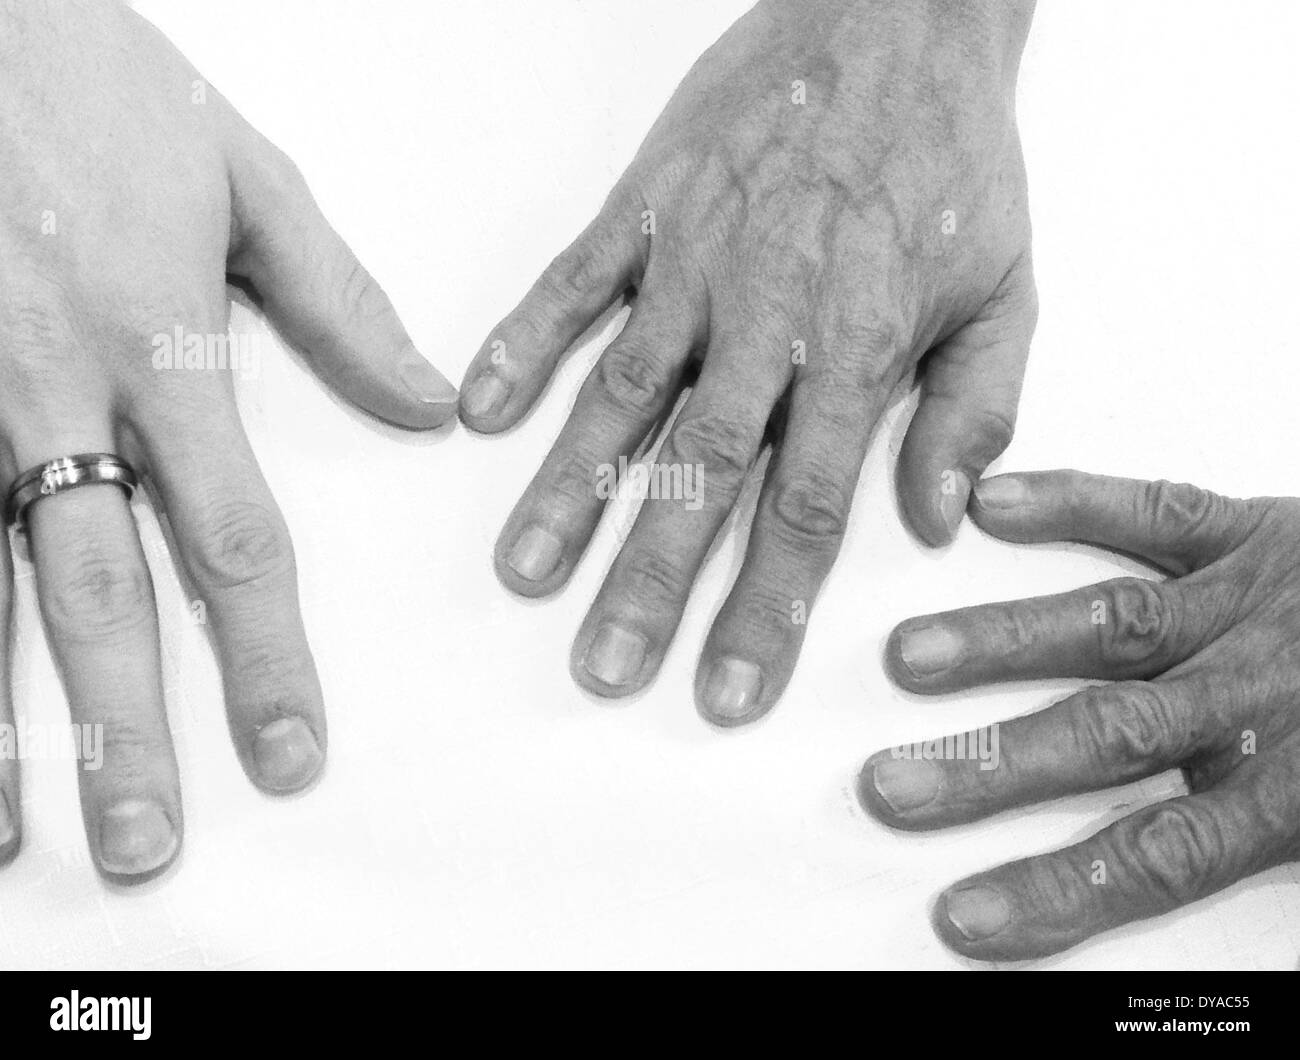 The hands of grandfather, son and grandson on a table. April 2014 Stock Photo